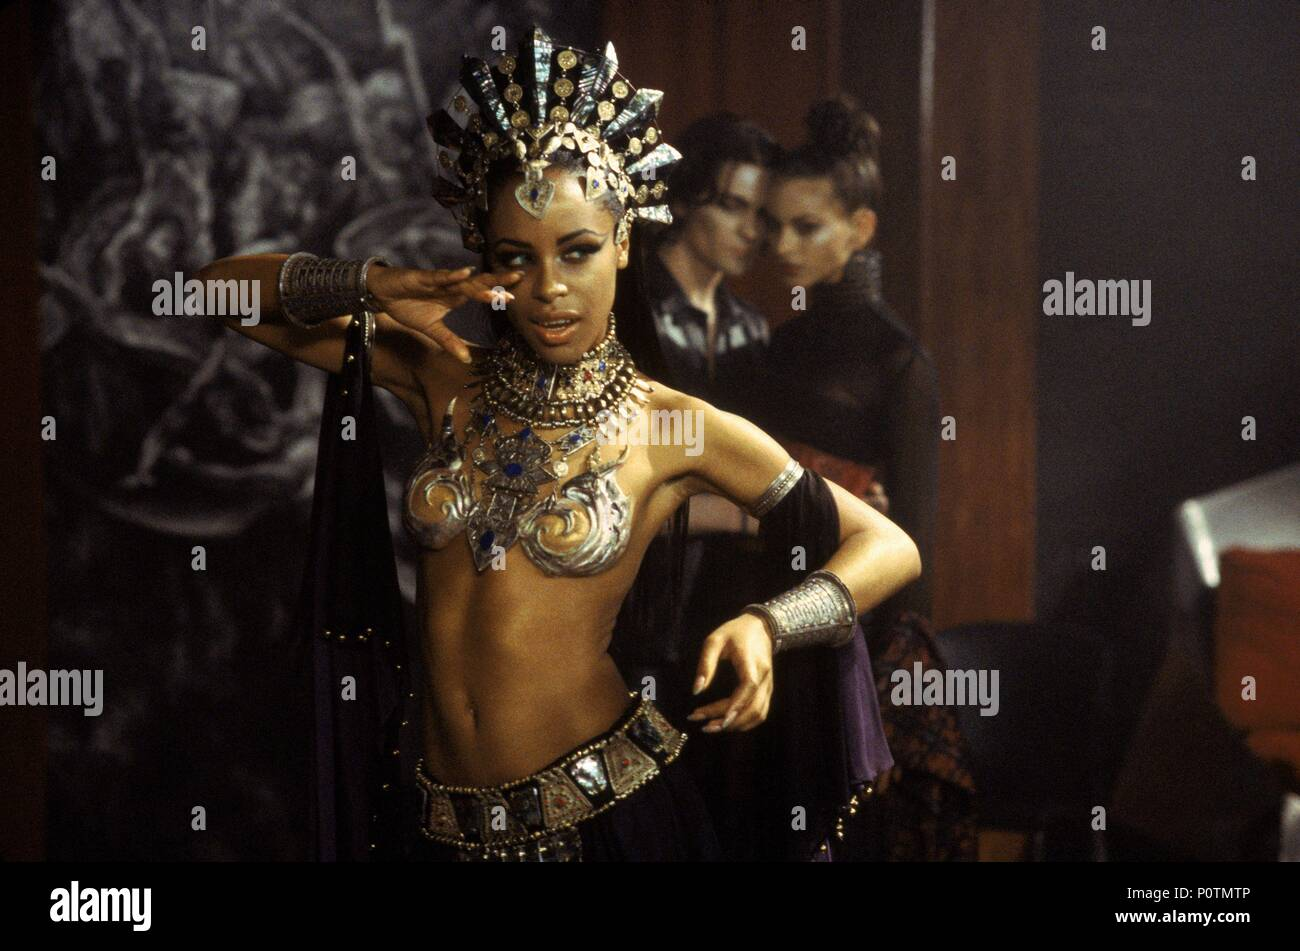 Original Film Title: QUEEN OF THE DAMNED.  English Title: QUEEN OF THE DAMNED.  Film Director: MICHAEL RYMER.  Year: 2002.  Stars: AALIYAH. Credit: WARNER BROS. PICTURES / Album - Stock Image